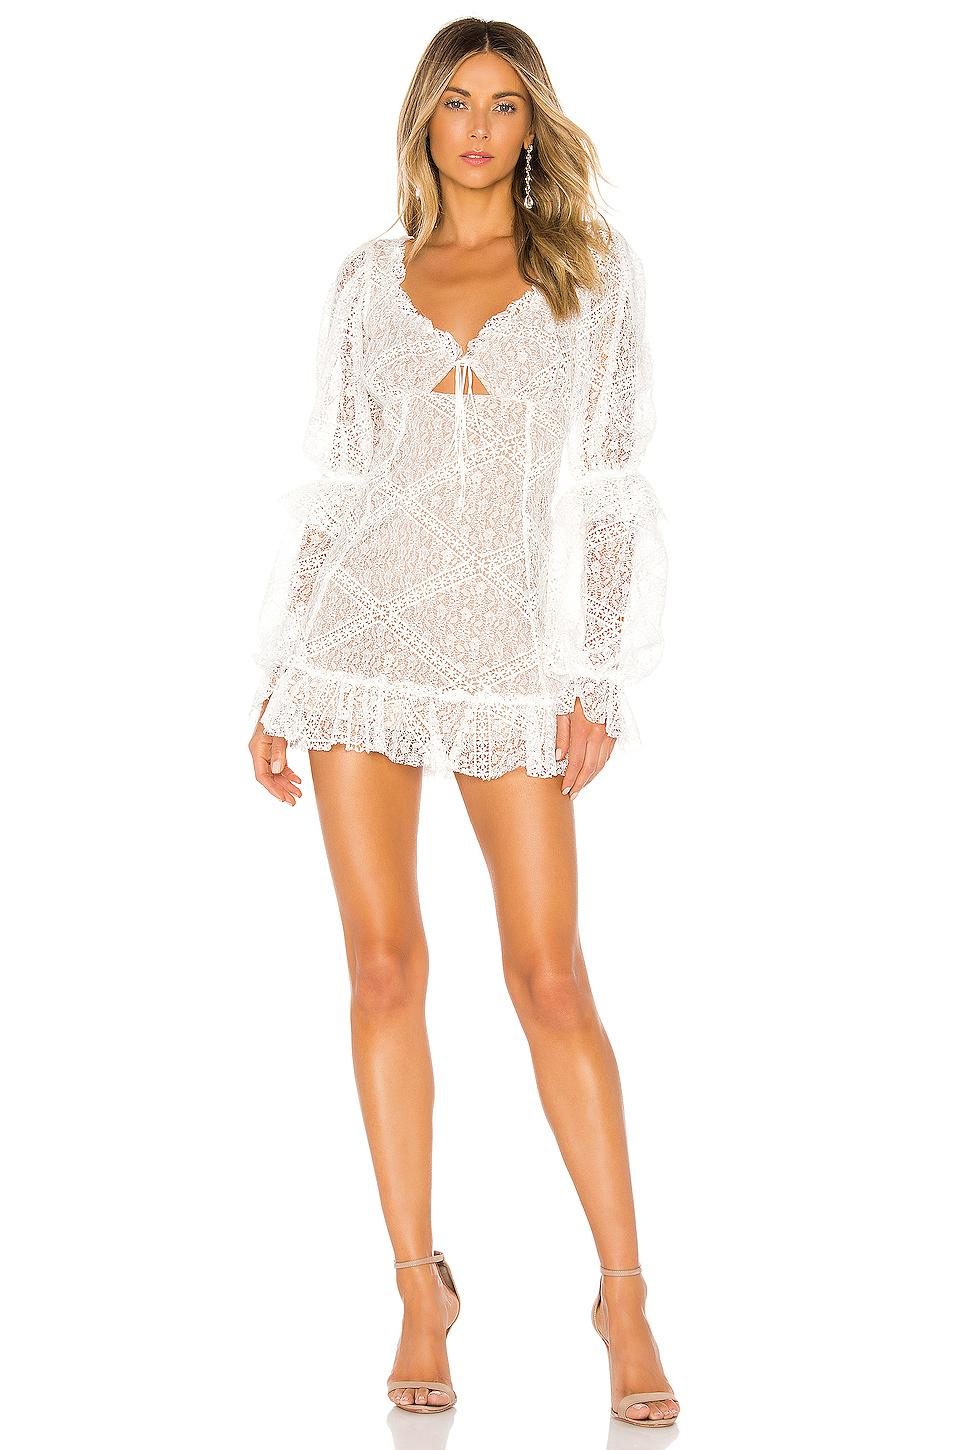 e112af84d1c For Love and Lemons Sequoia Lace Mini Dress White Size 6 | The Volte